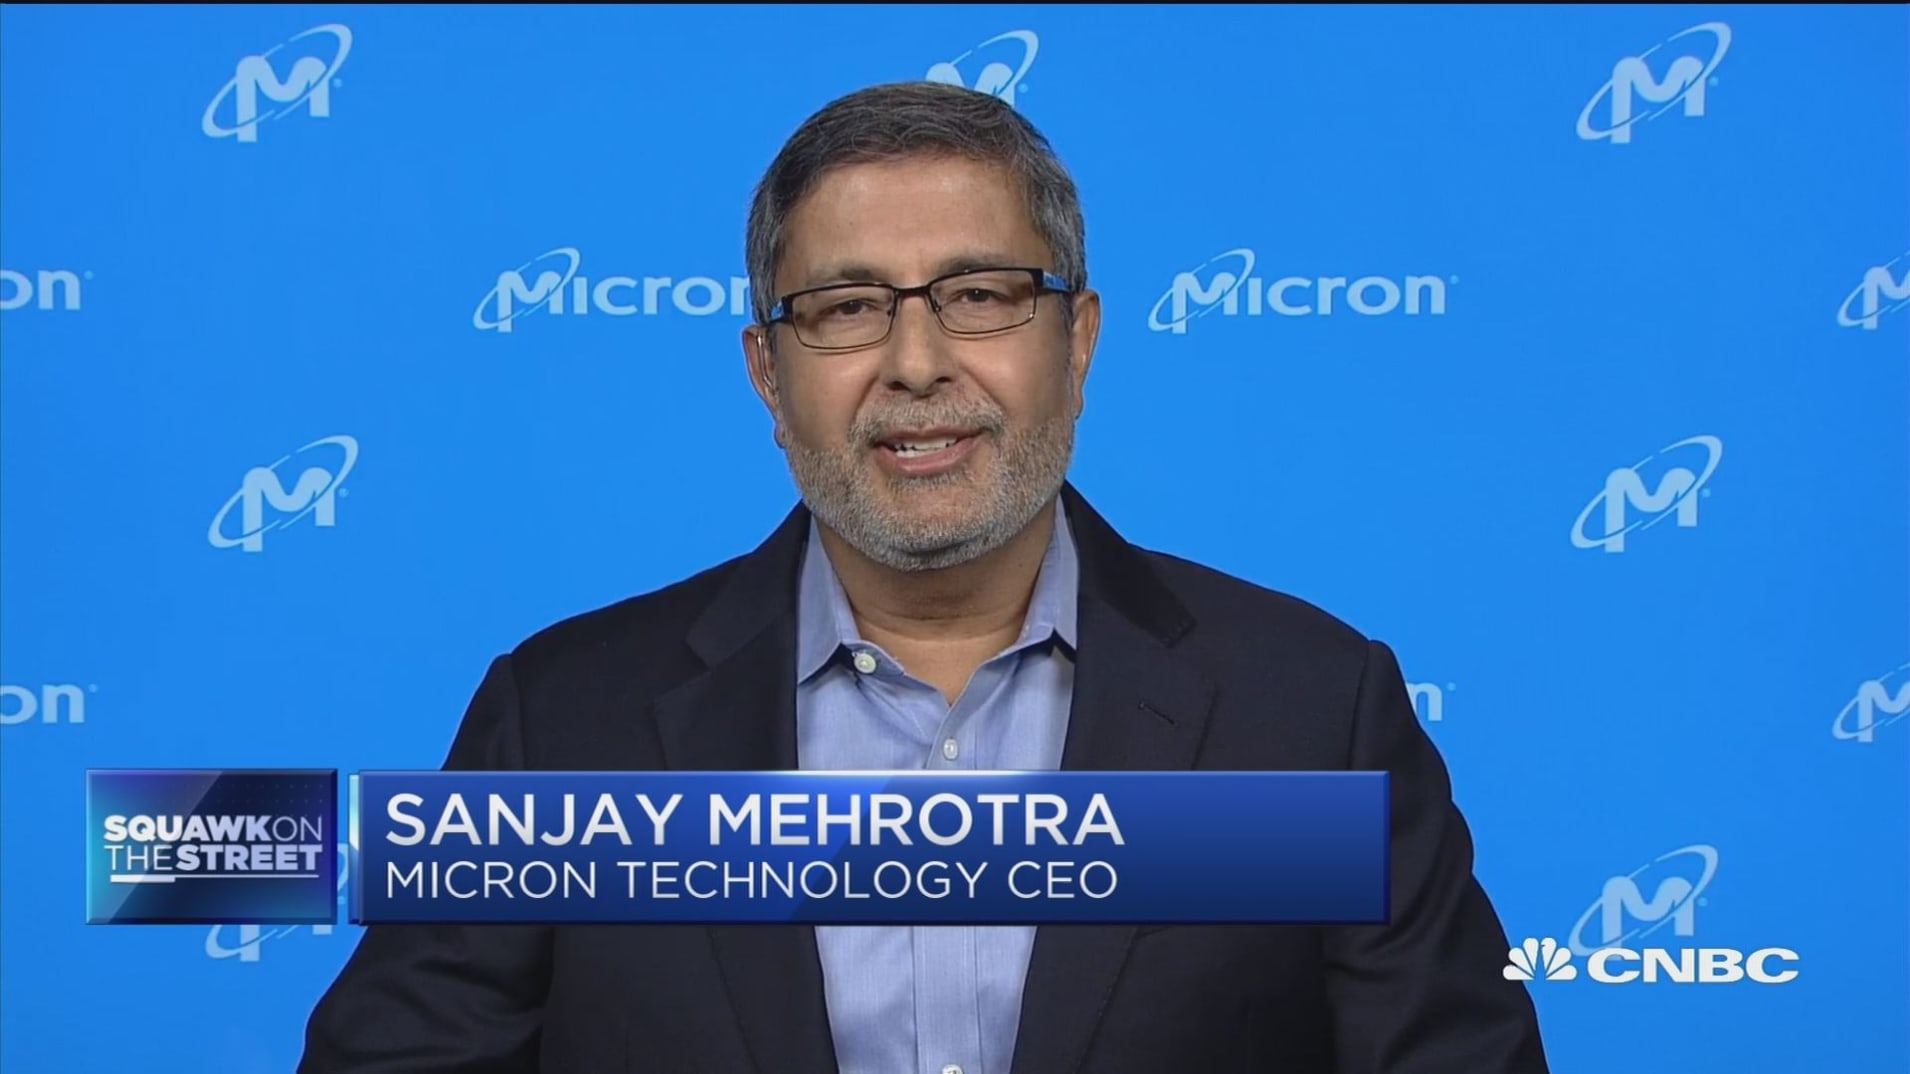 Why Micron CEO Sanjay Mehrotra expects high demand growth in the second half of 2019